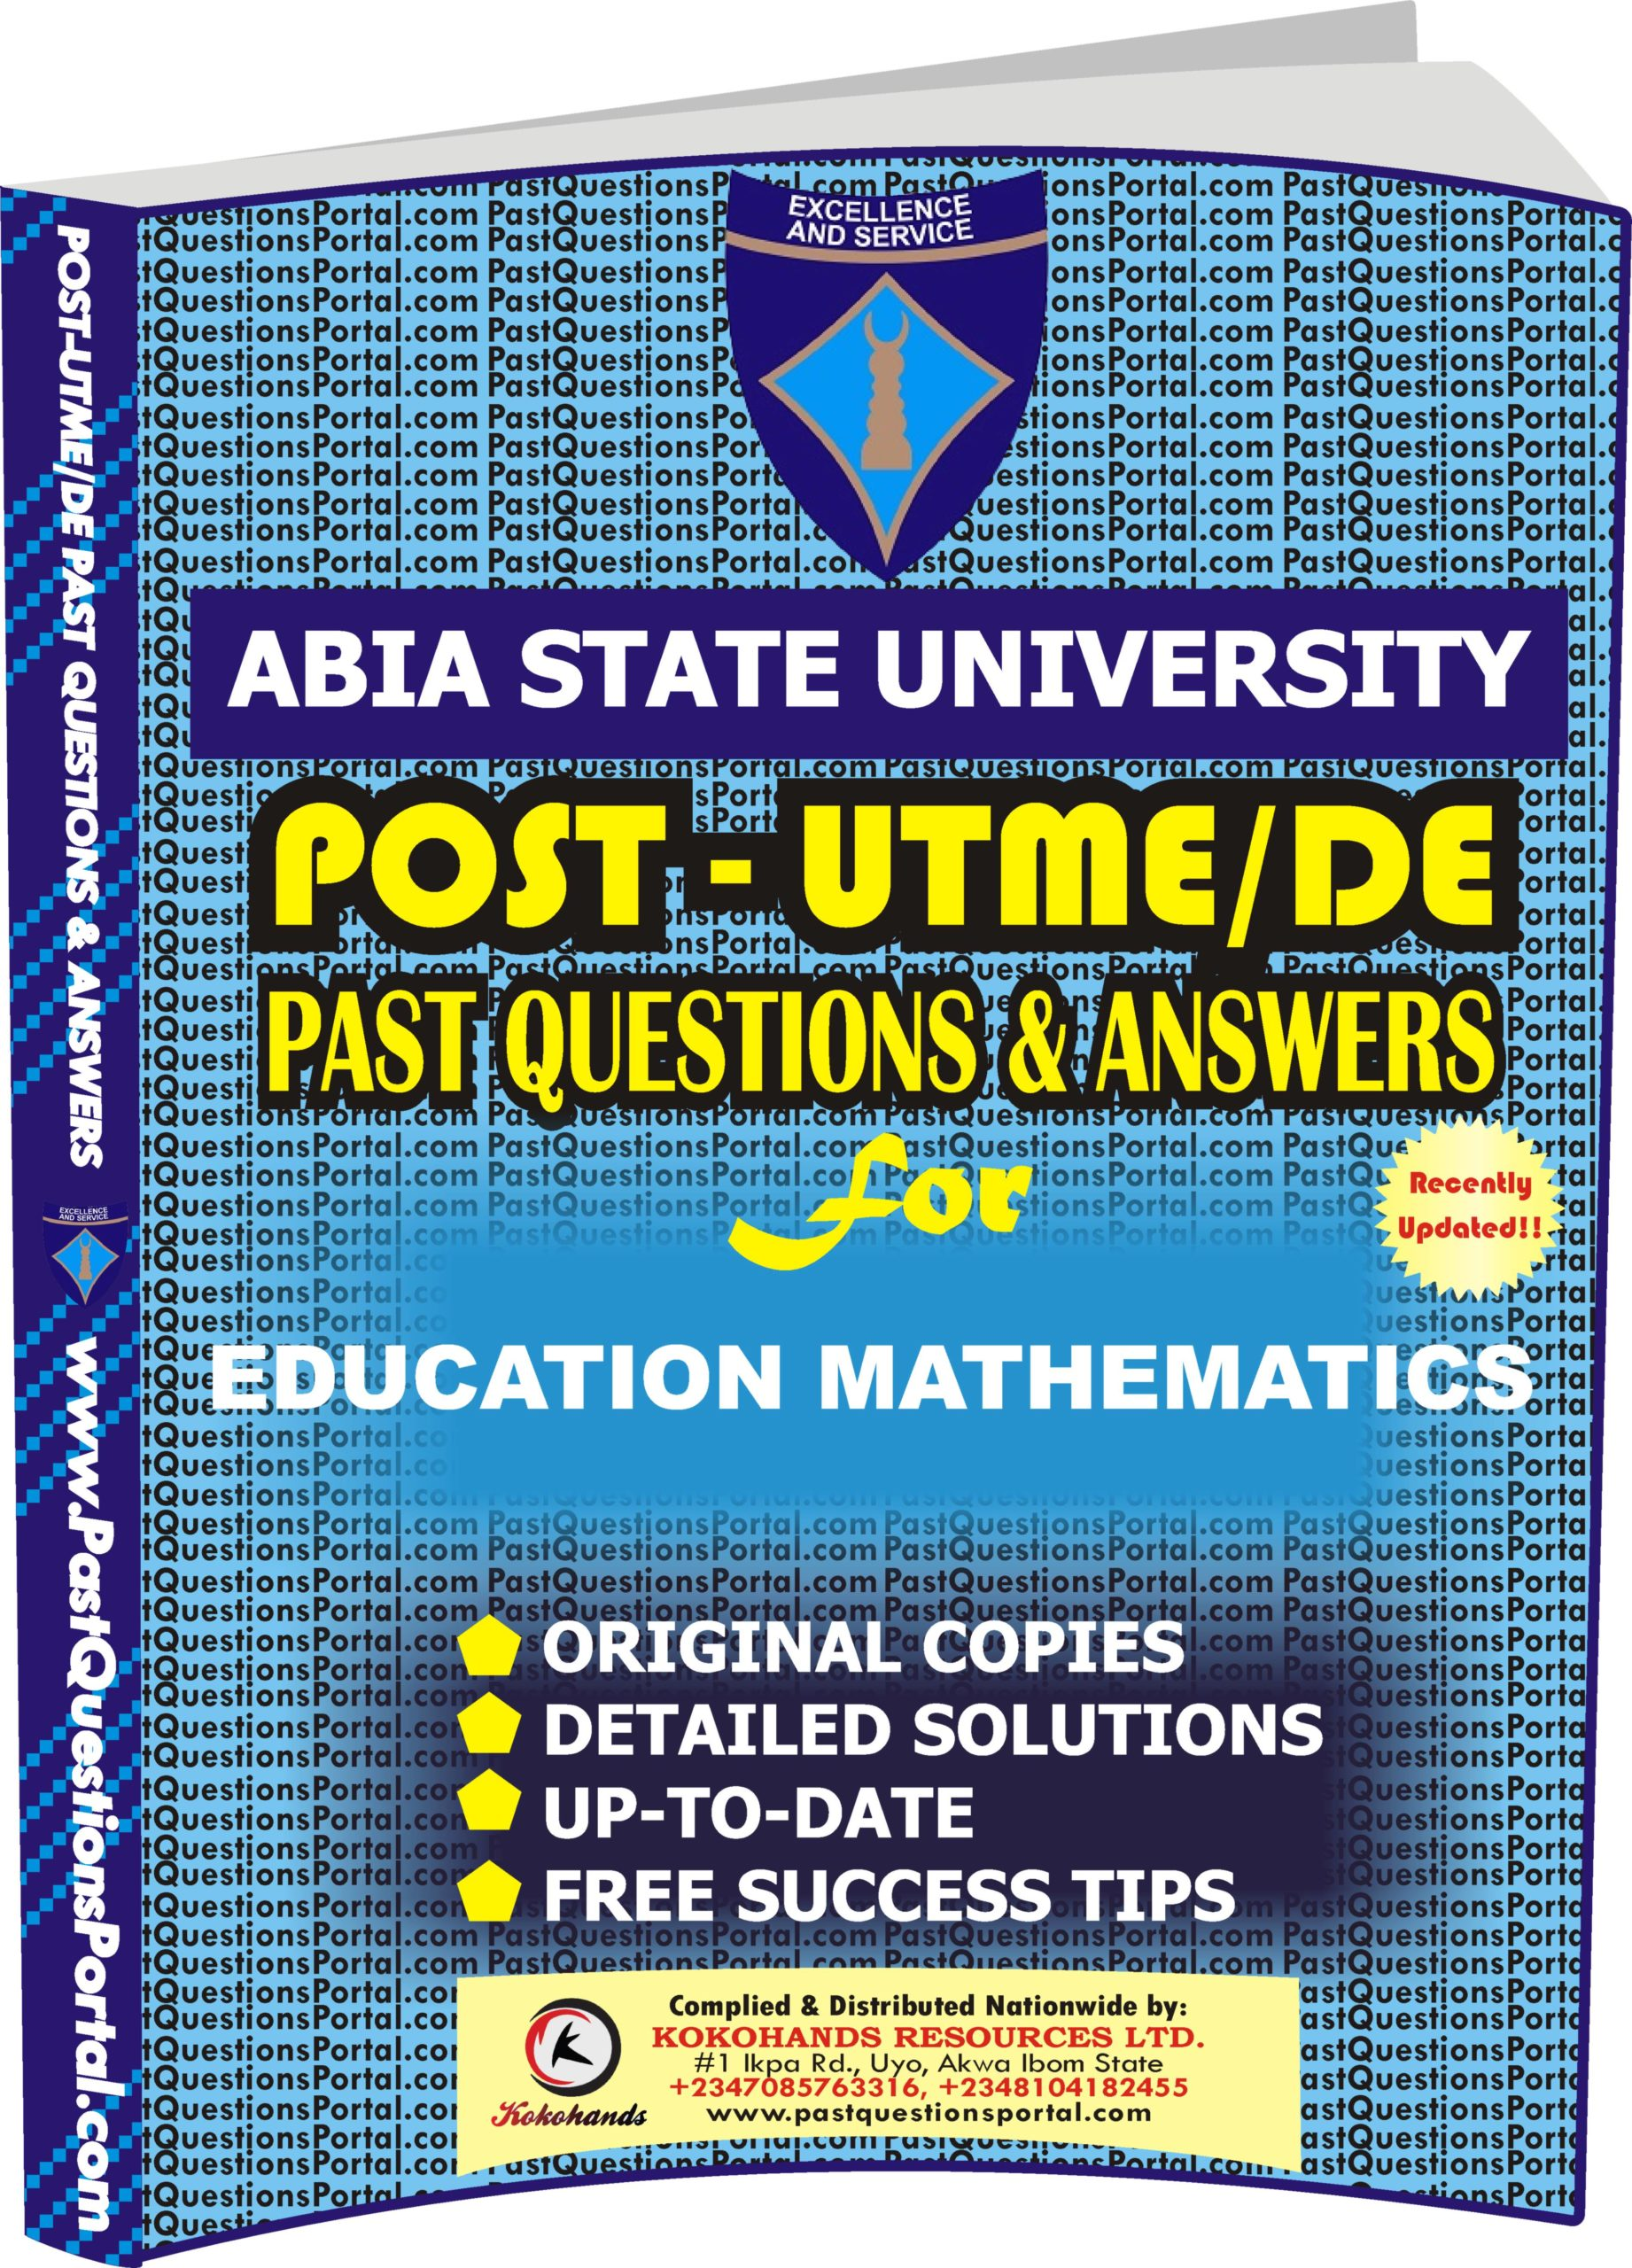 ABSU Post UTME Past Questions for EDUCATION MATHEMATICS